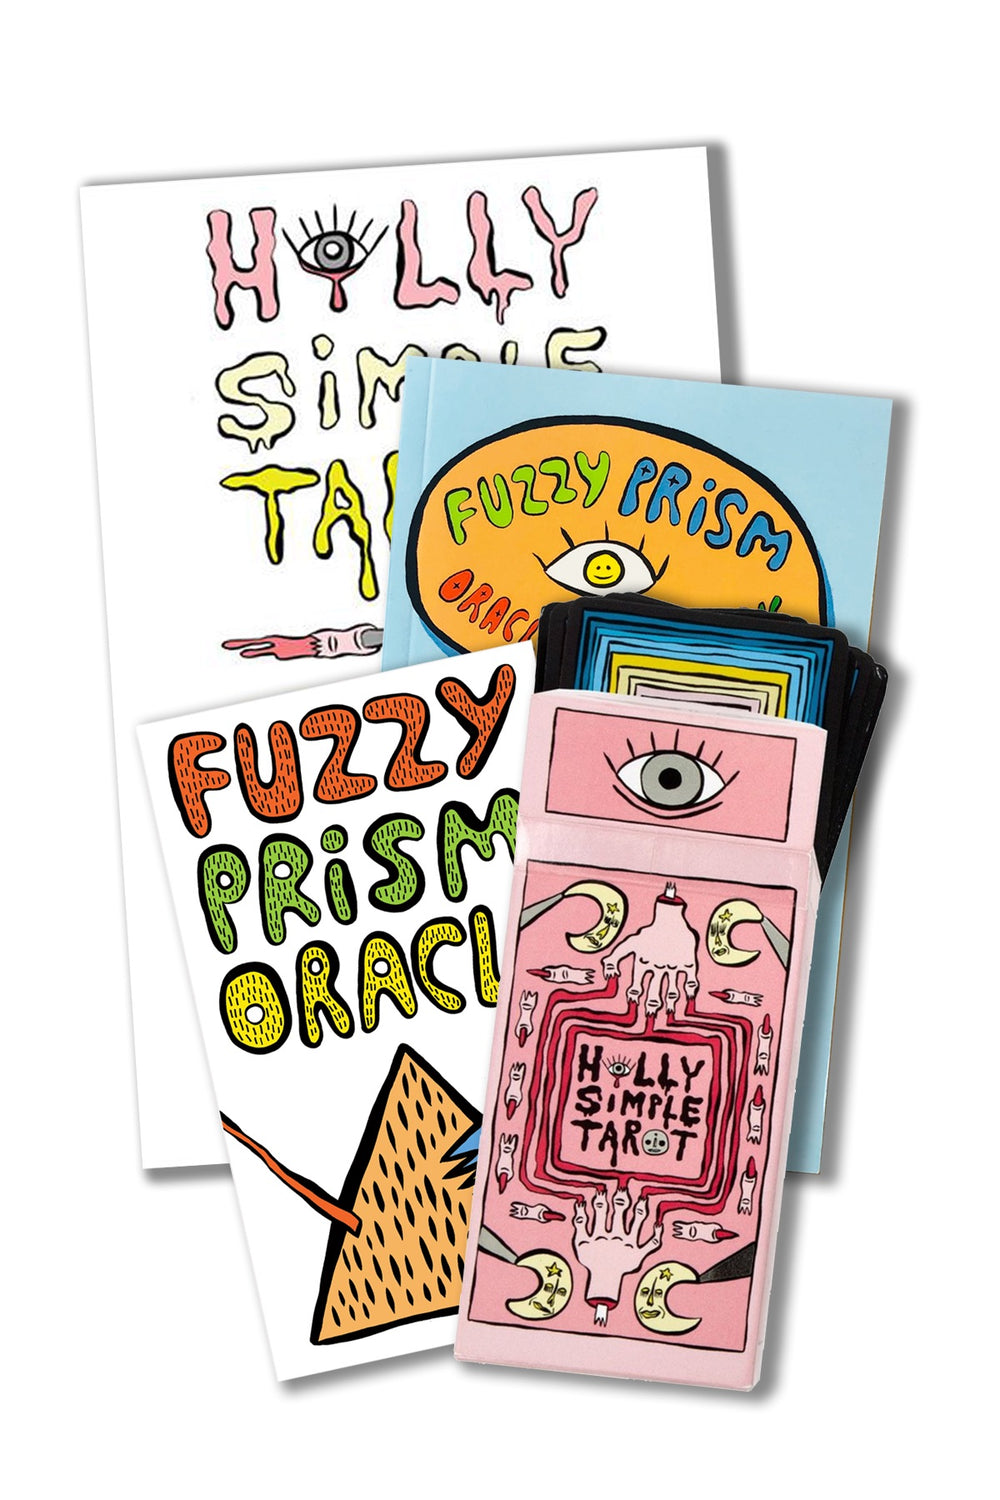 HOLLY SIMPLE TAROT AND FUZZY PRISM ORACLE MASTER PACK (PREORDER WITH NEW TAROT DECK)